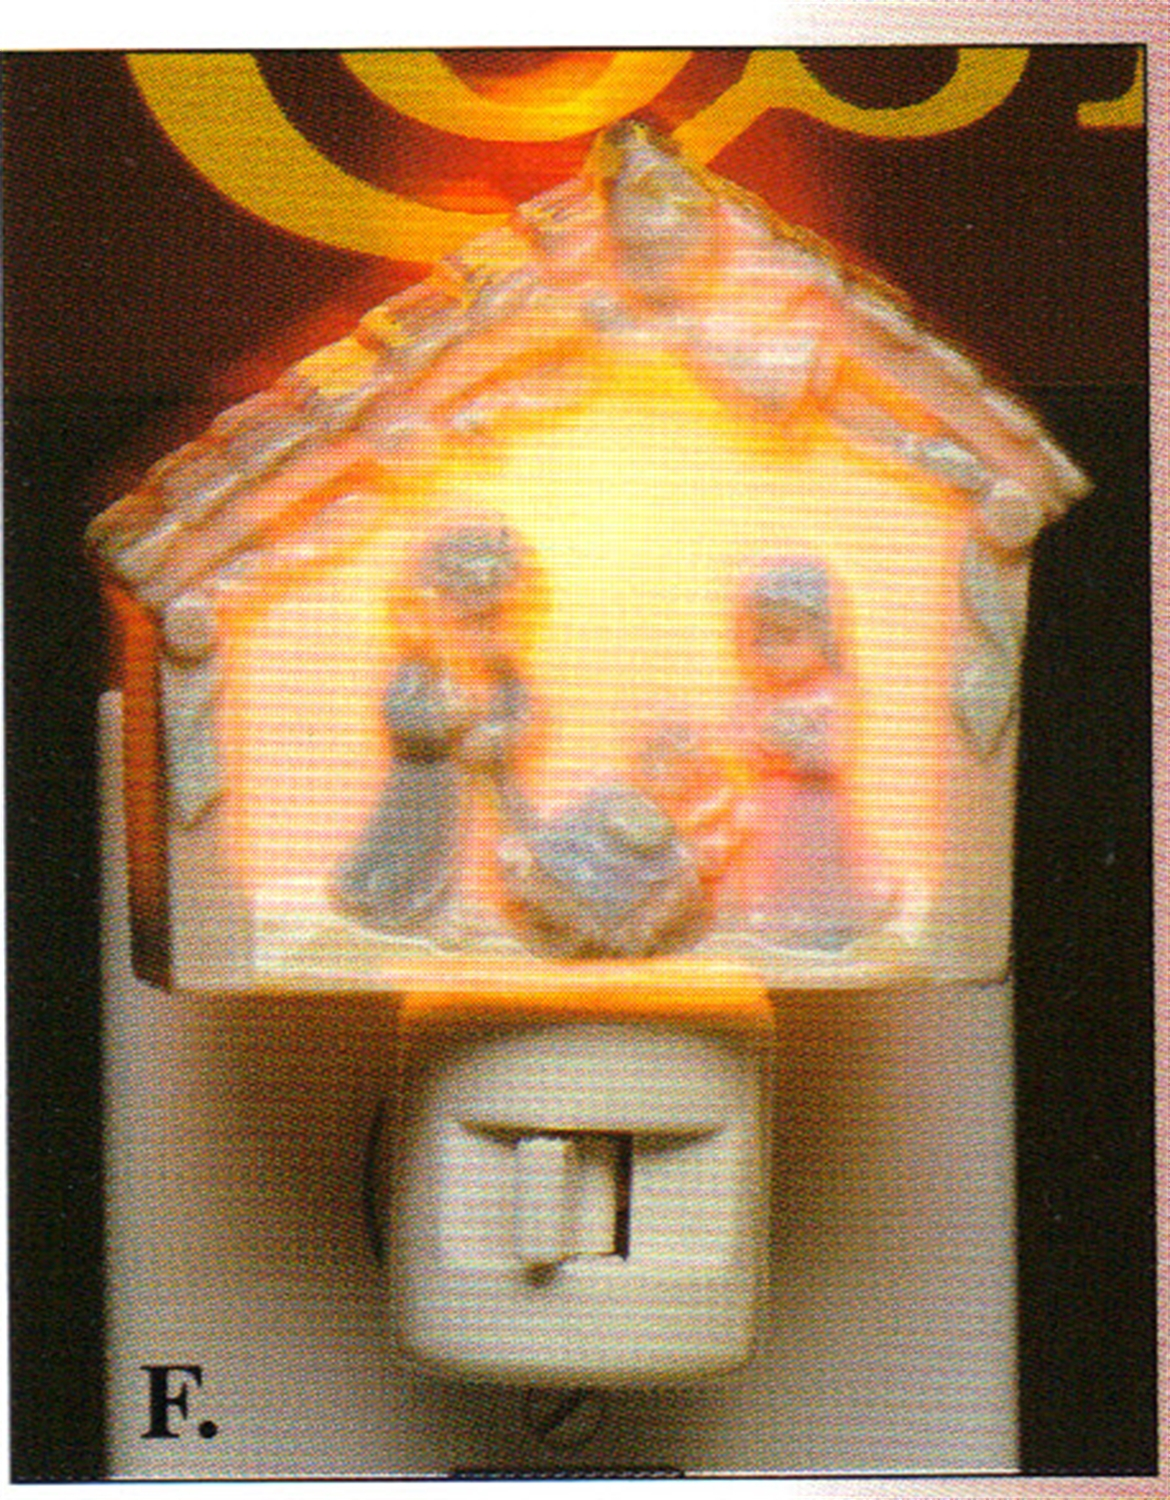 Moshy brothers nativity wall night light f.5679